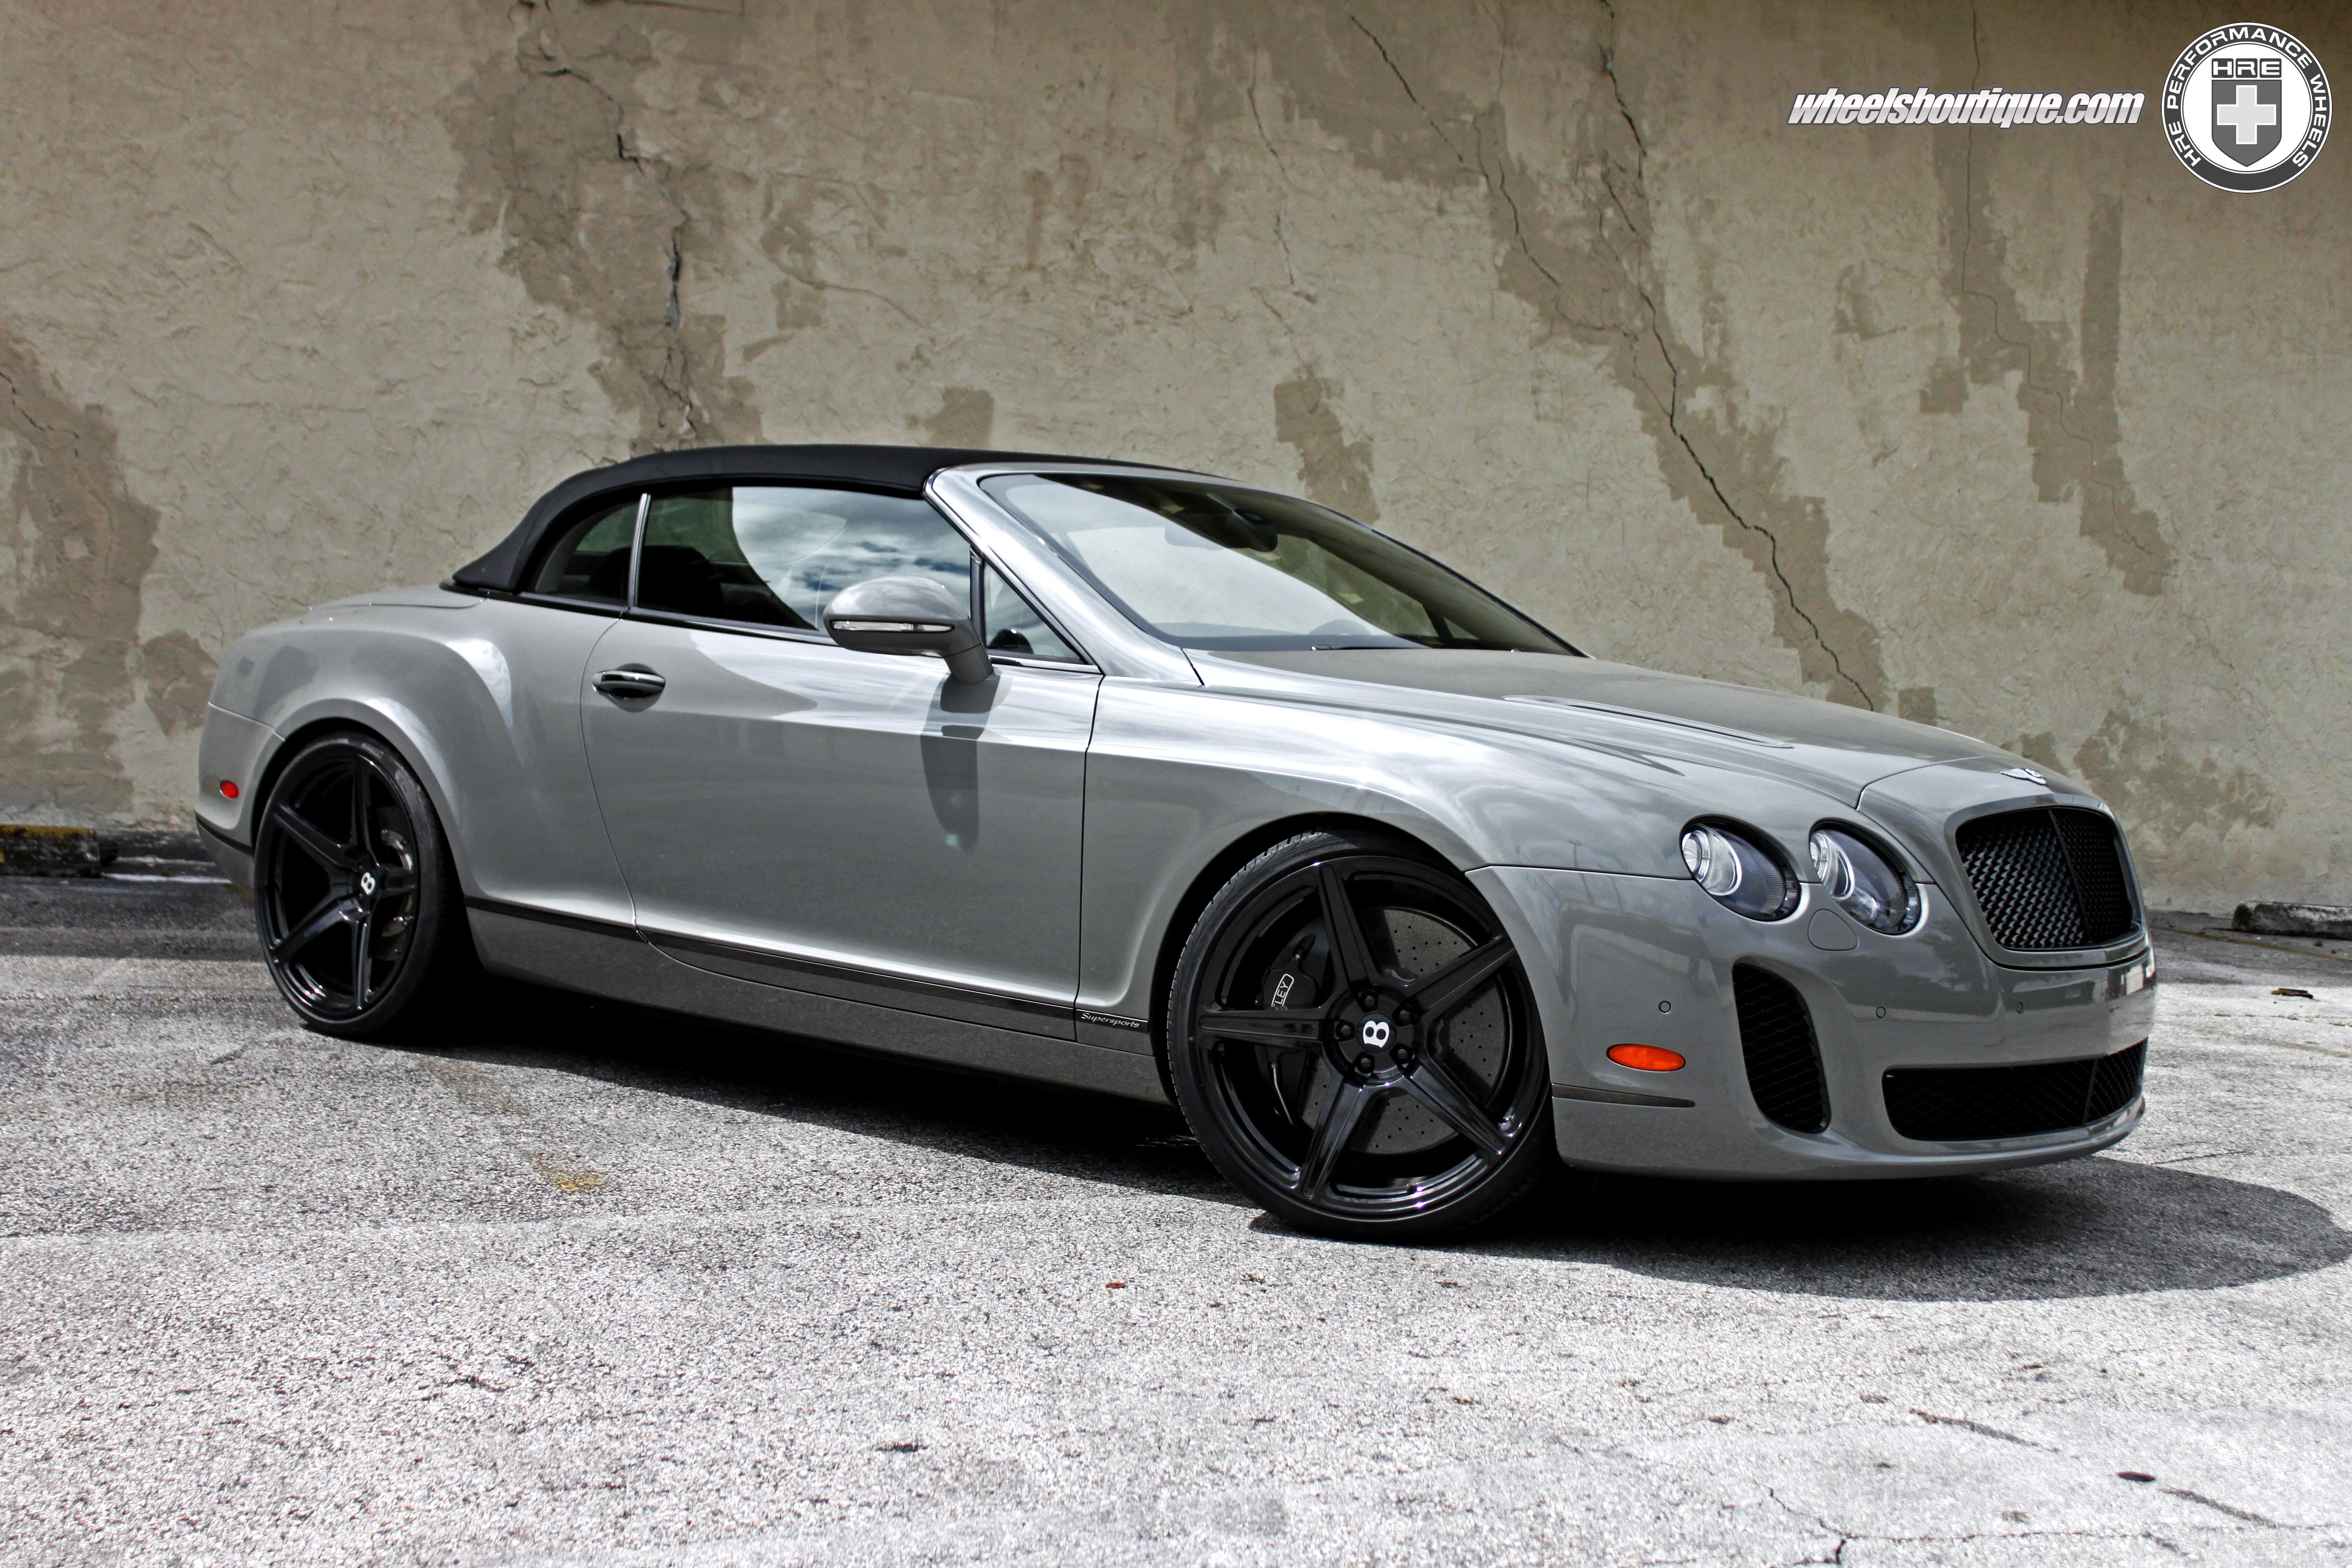 reviews gt tg top convertible car bentley gear review jb continental s first drive supersports prevnext